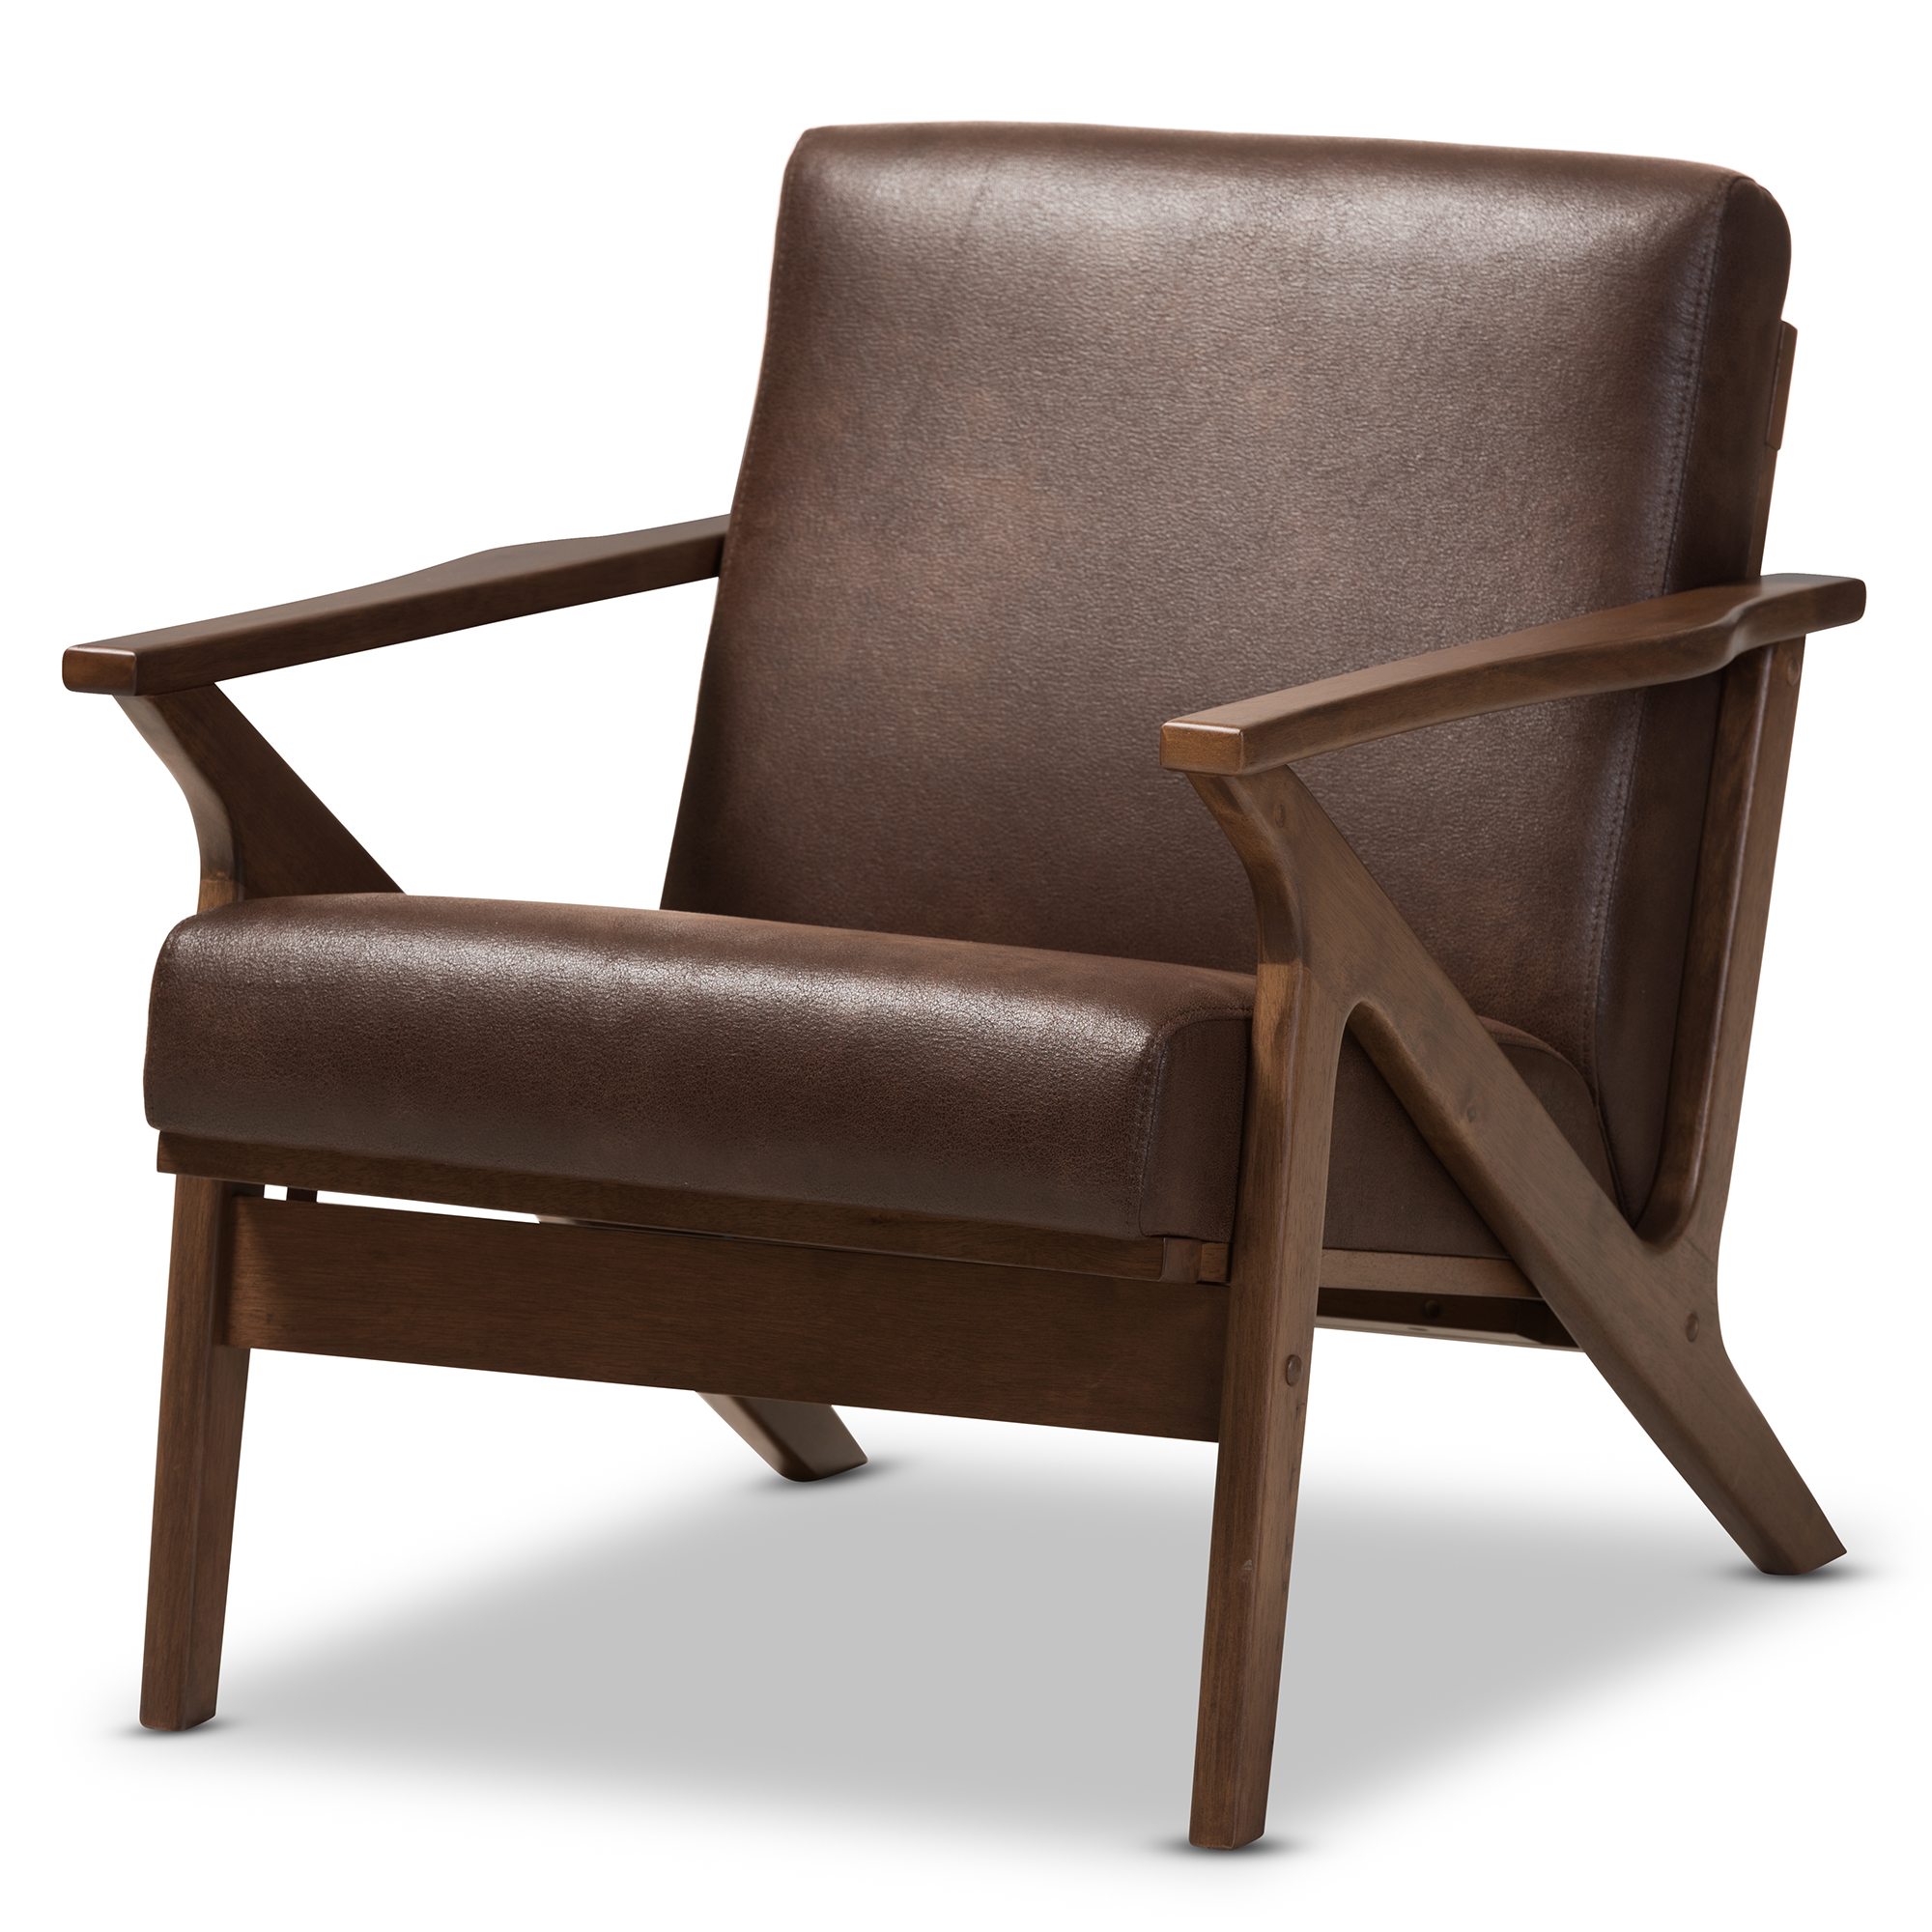 Wood Club Chair Baxton Studio Bianca Mid Century Modern Walnut Wood Dark Brown Distressed Faux Leather Lounge Chair